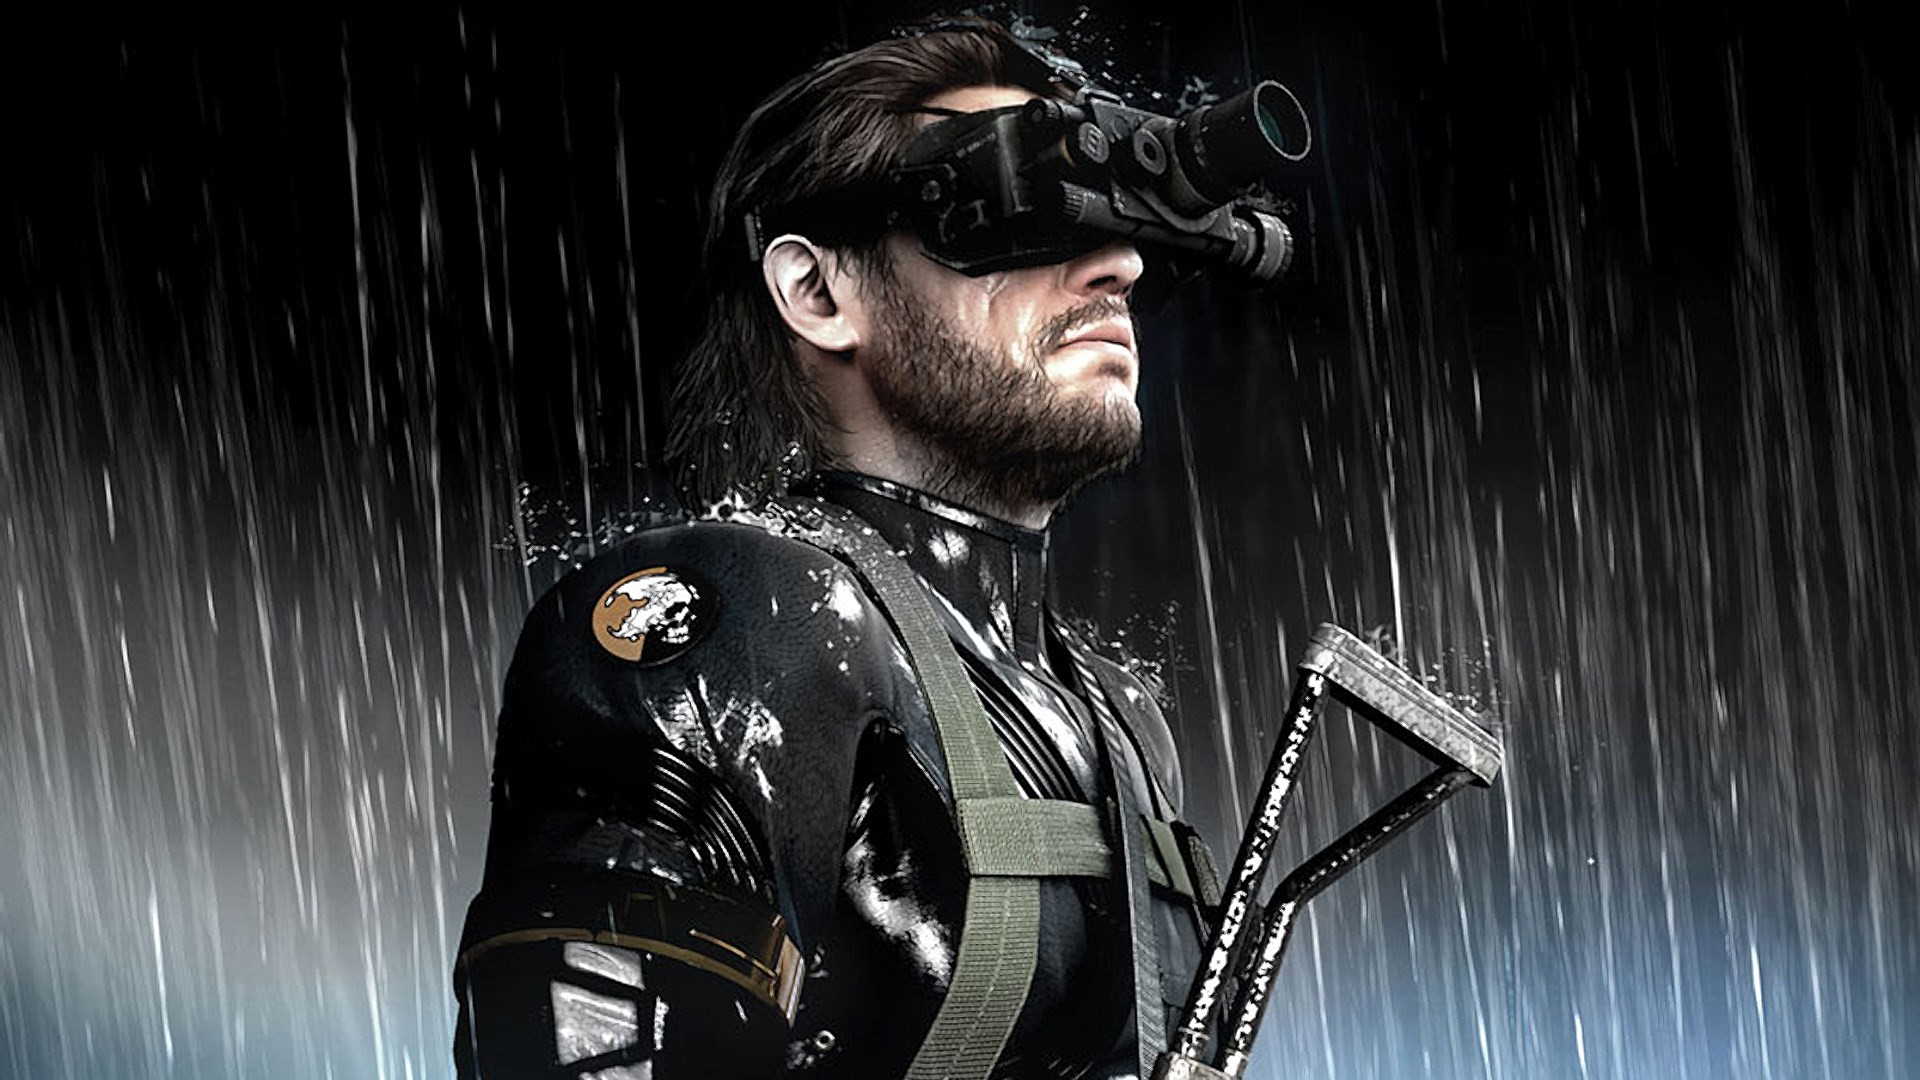 Full size metal gear solid v ground zeroes picture, Stuart Bush 2017-03-